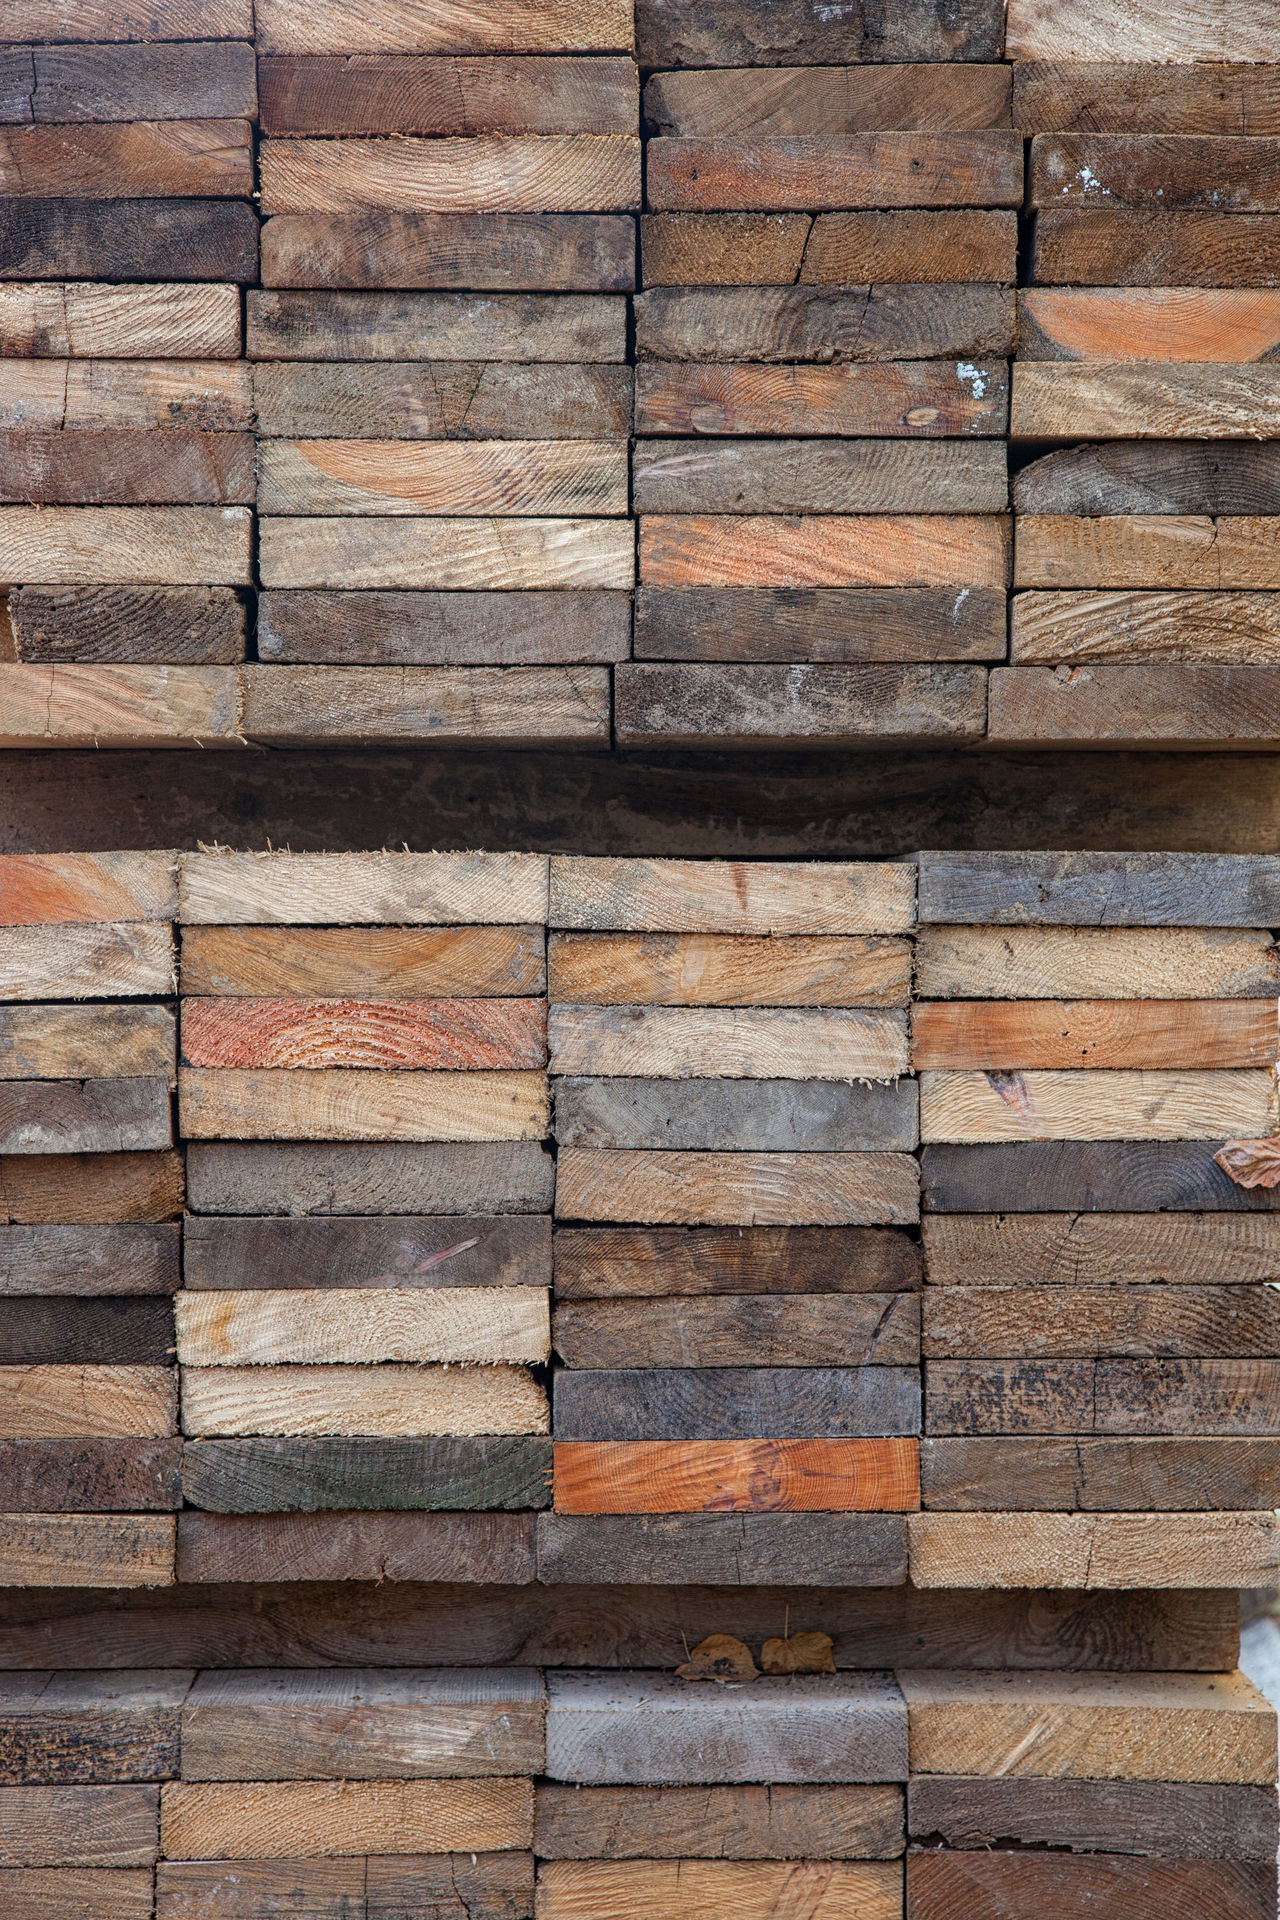 Structures and Backgrounds as found in Berlin: Stack of Wooden planks Backgrounds Boards Details Details Textures And Shapes Grunge Many Planks Run-down Stack Stacked Structures Textured  Textures Textures And Surfaces Vertical Wood Wood - Material Wooden Wooden Texture